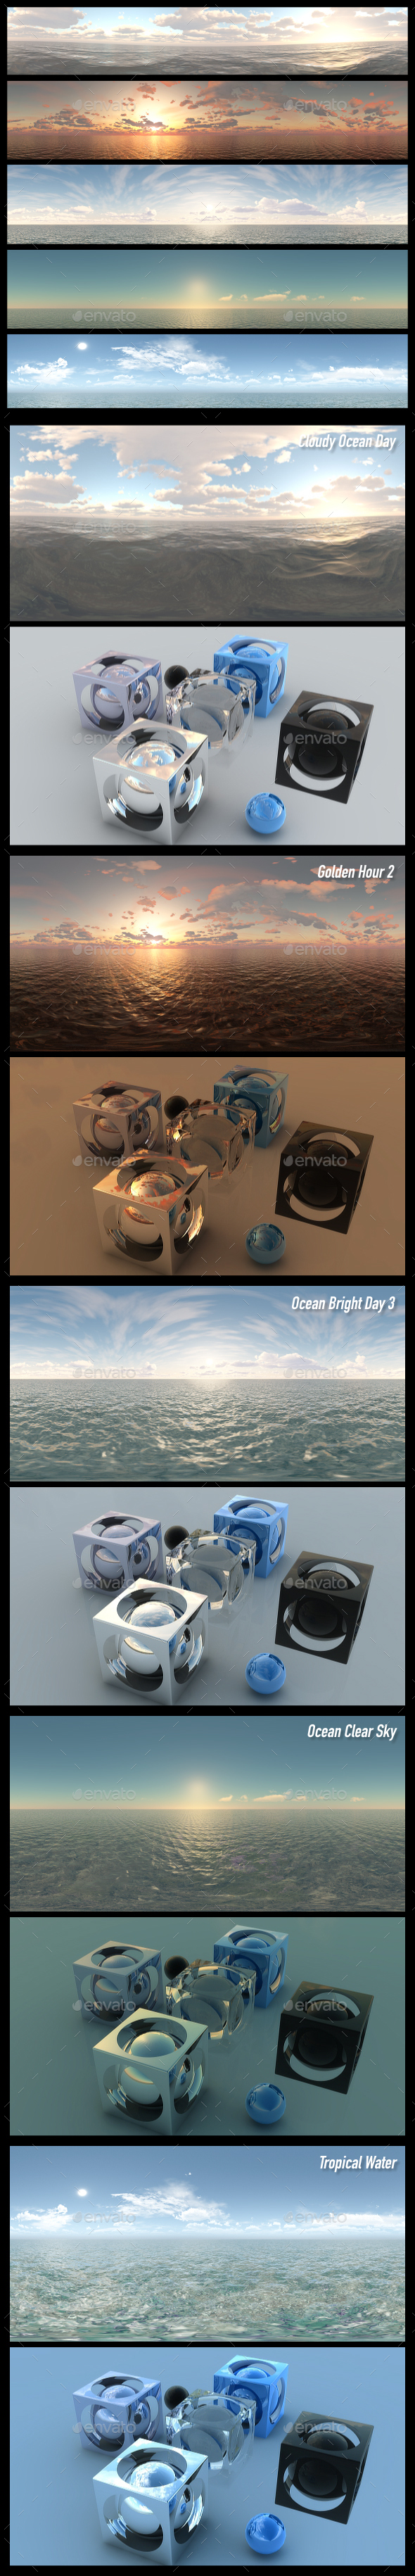 HDRI Pack 7 - 3DOcean Item for Sale